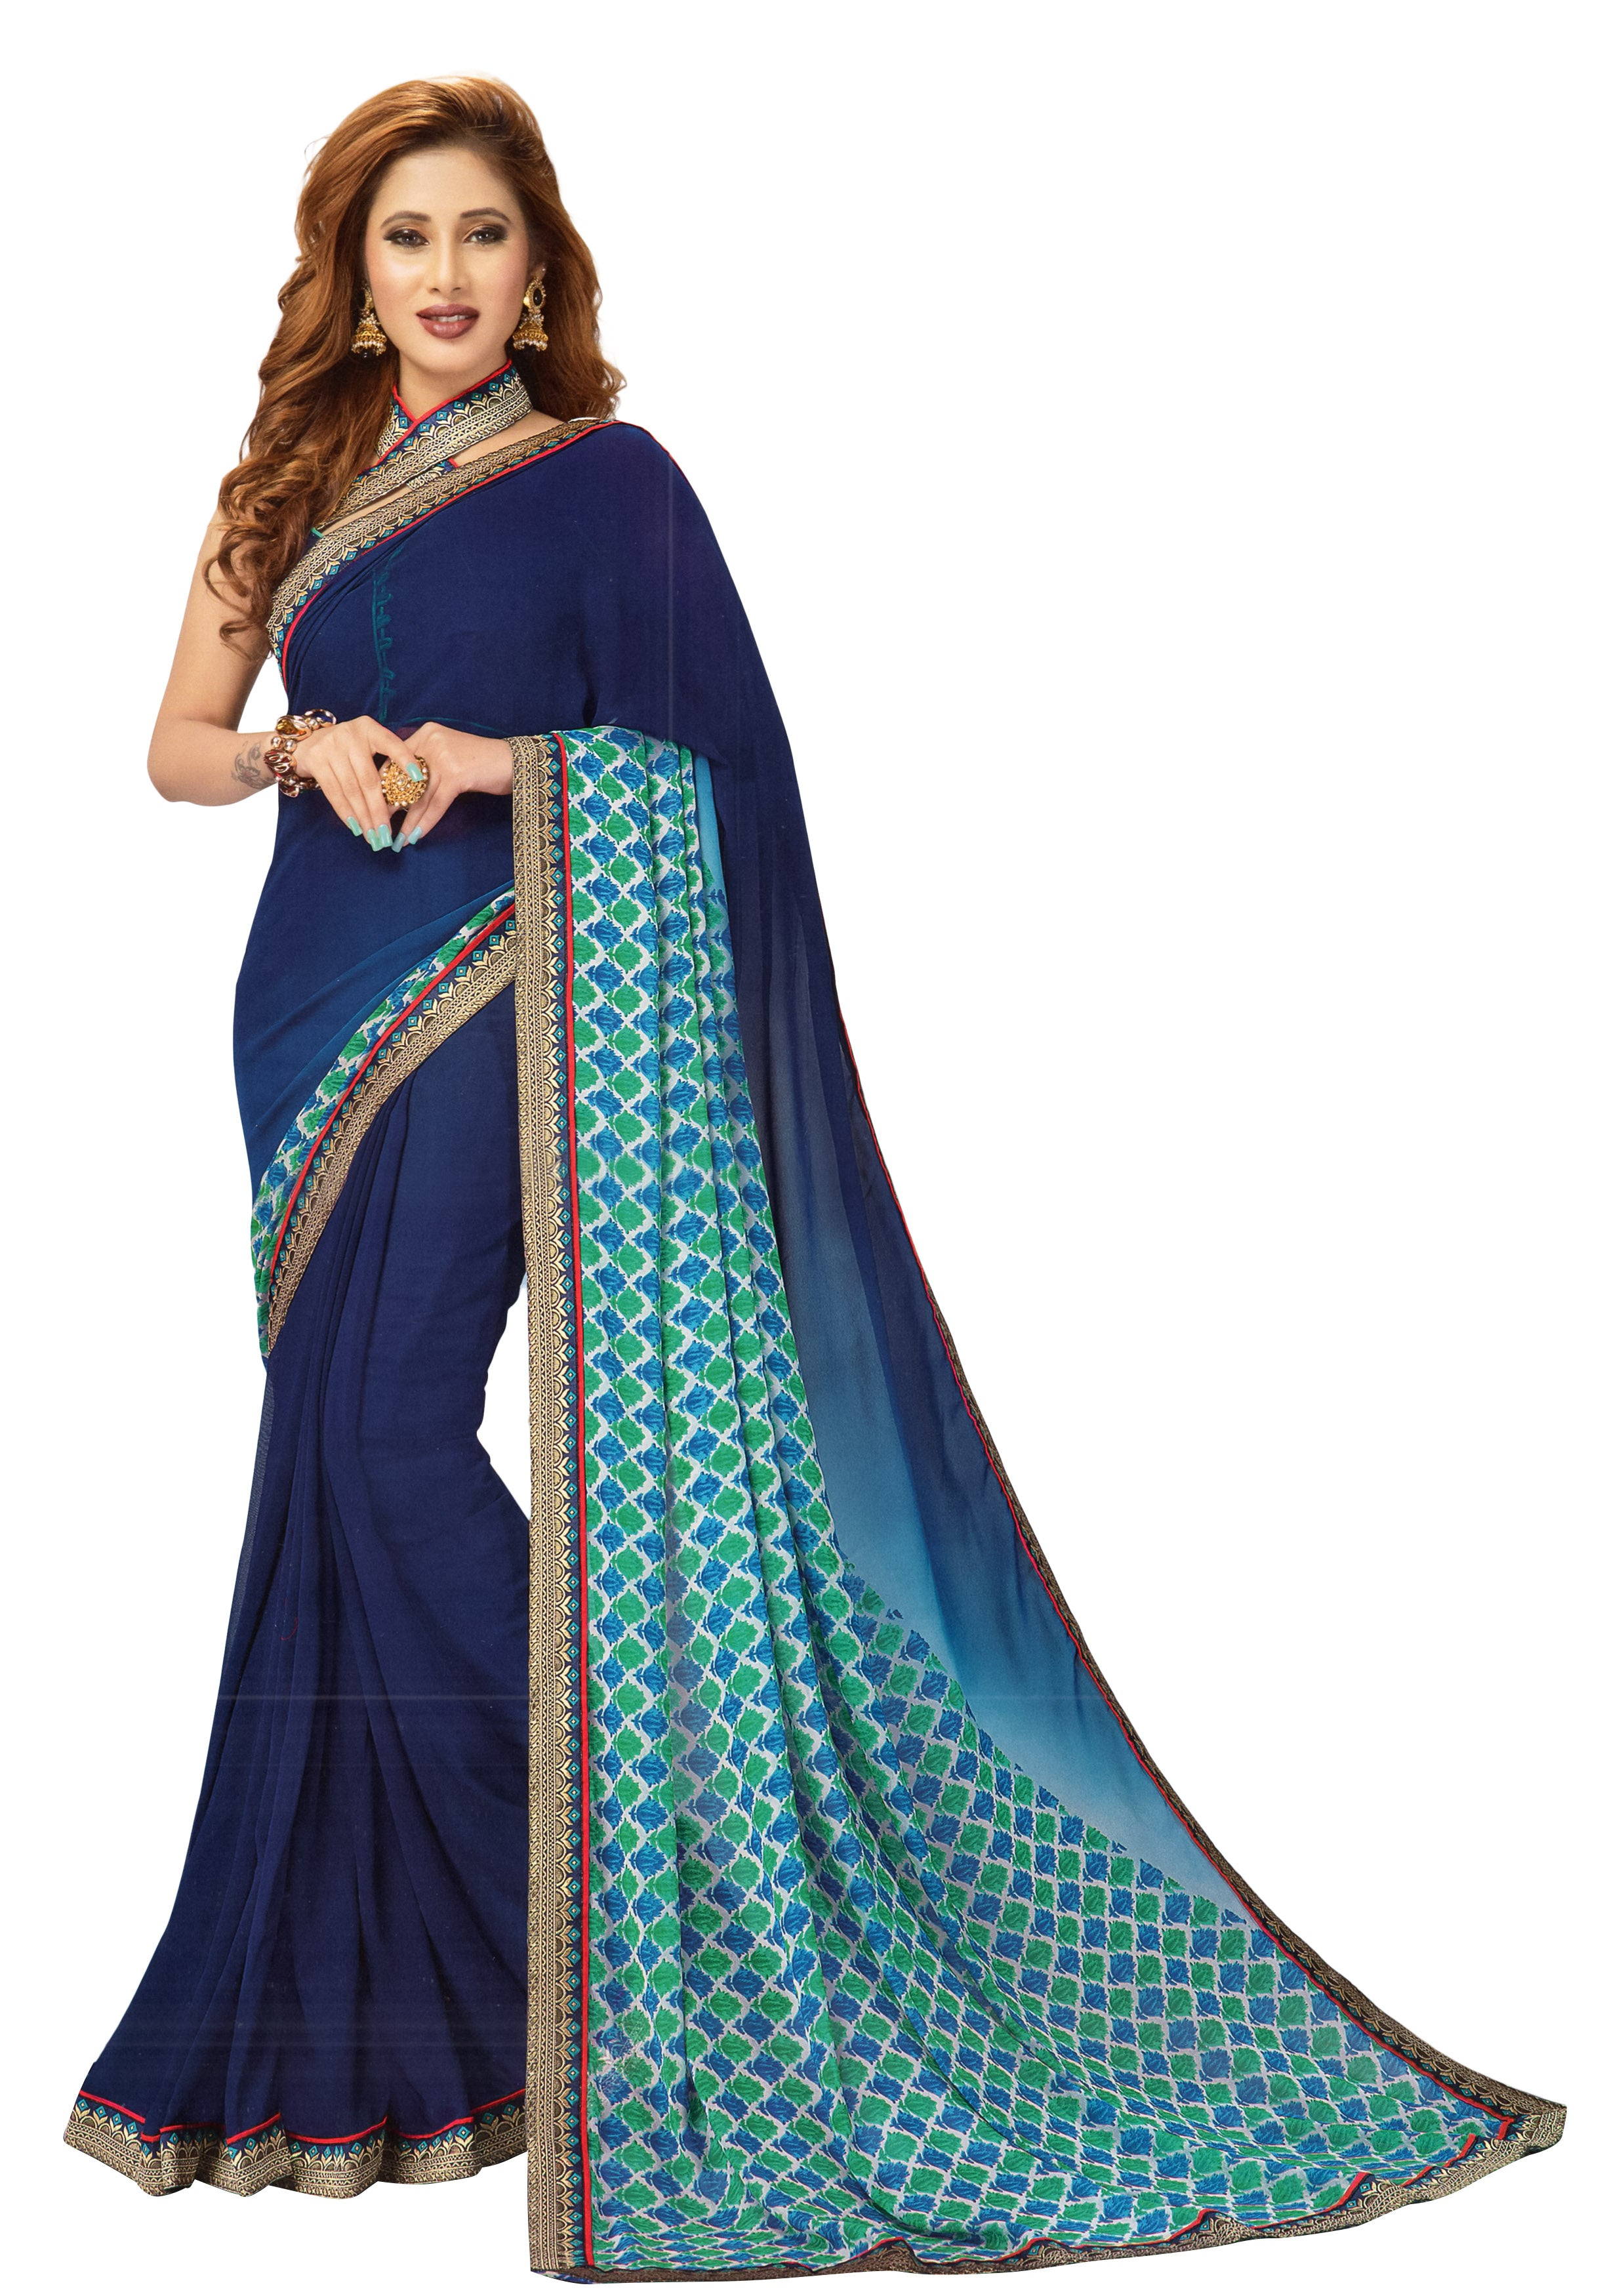 JBP Baghban Vol-1 Printed Synthetic Saree With Blouse Piece (Navy Blue) Indians Boutique